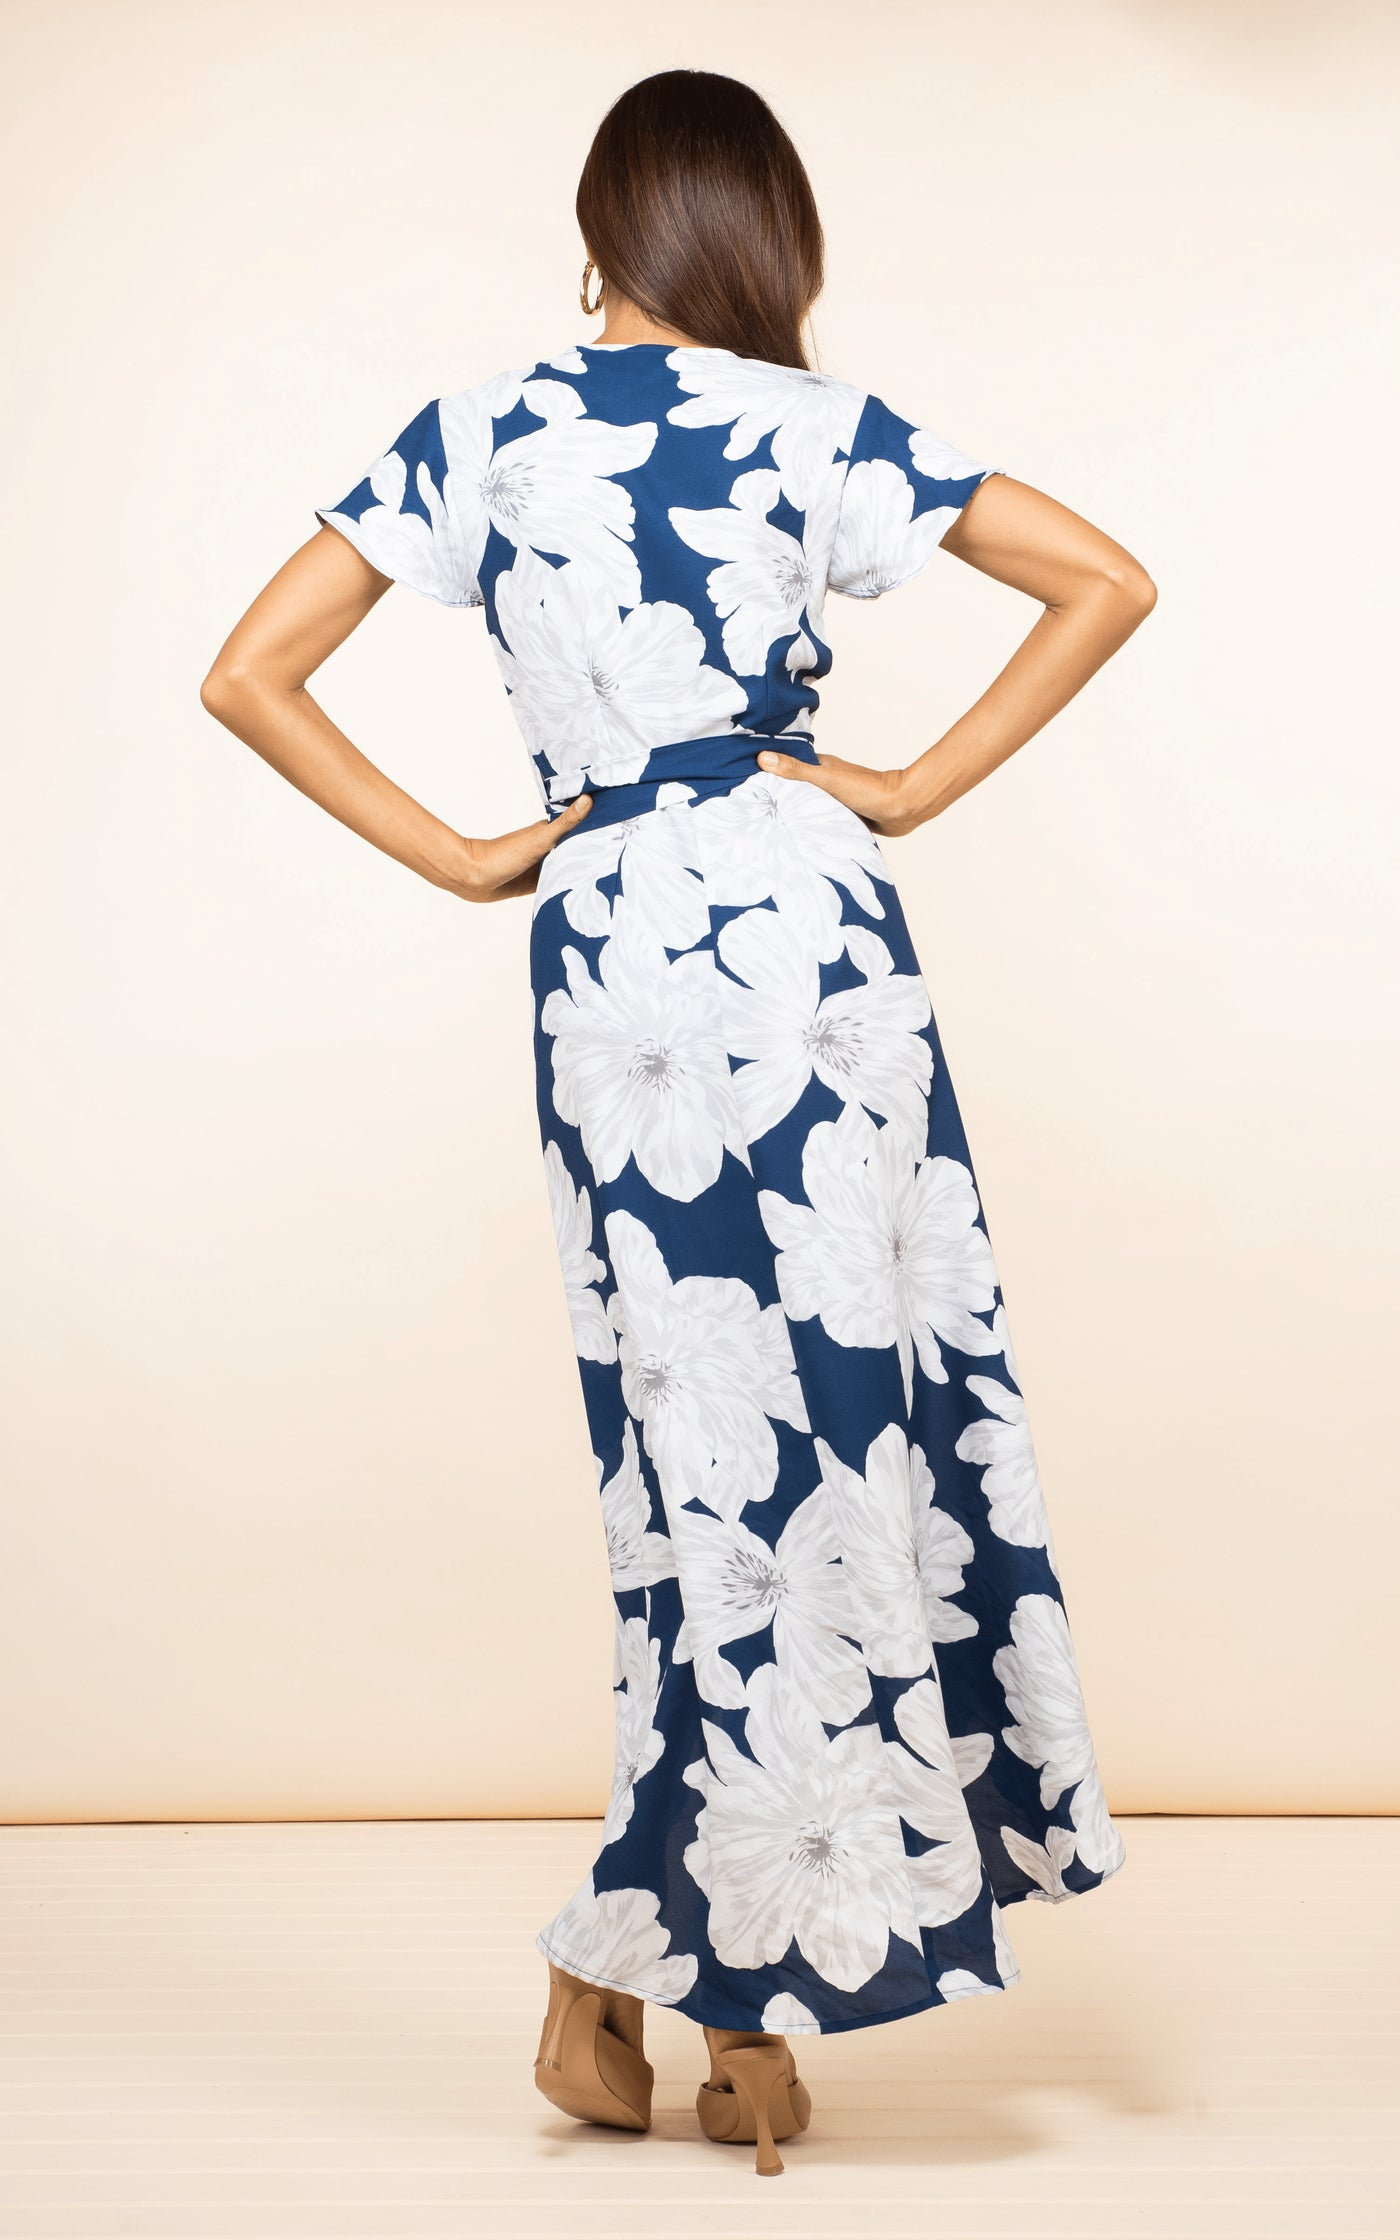 Backward-facing brunette model wears Cayenne Dress in Navy Bloom floral print by Dancing Leopard